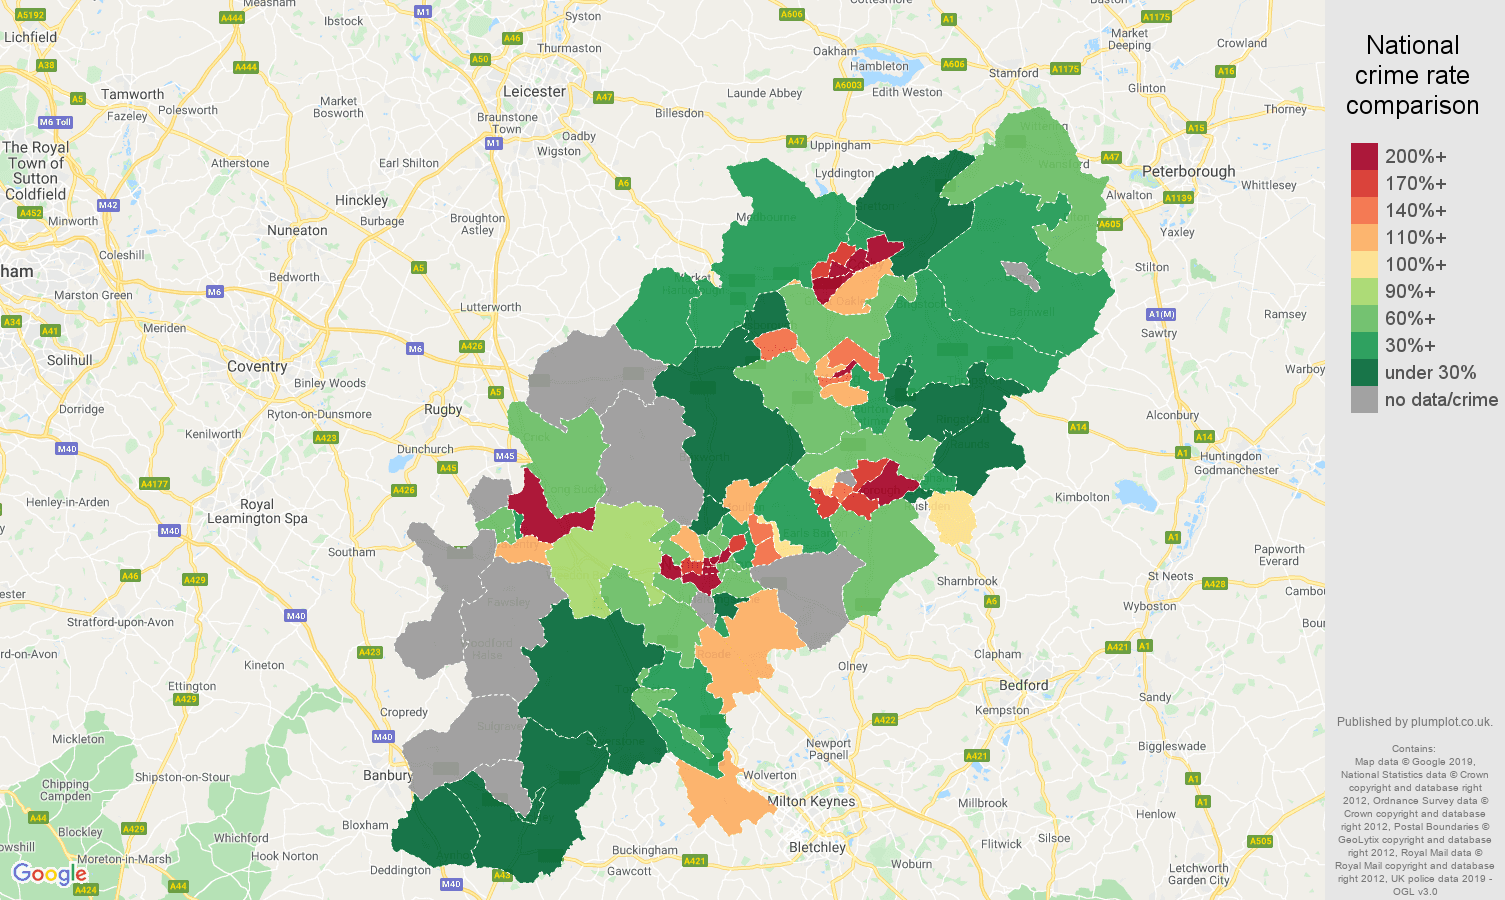 Northamptonshire possession of weapons crime rate comparison map